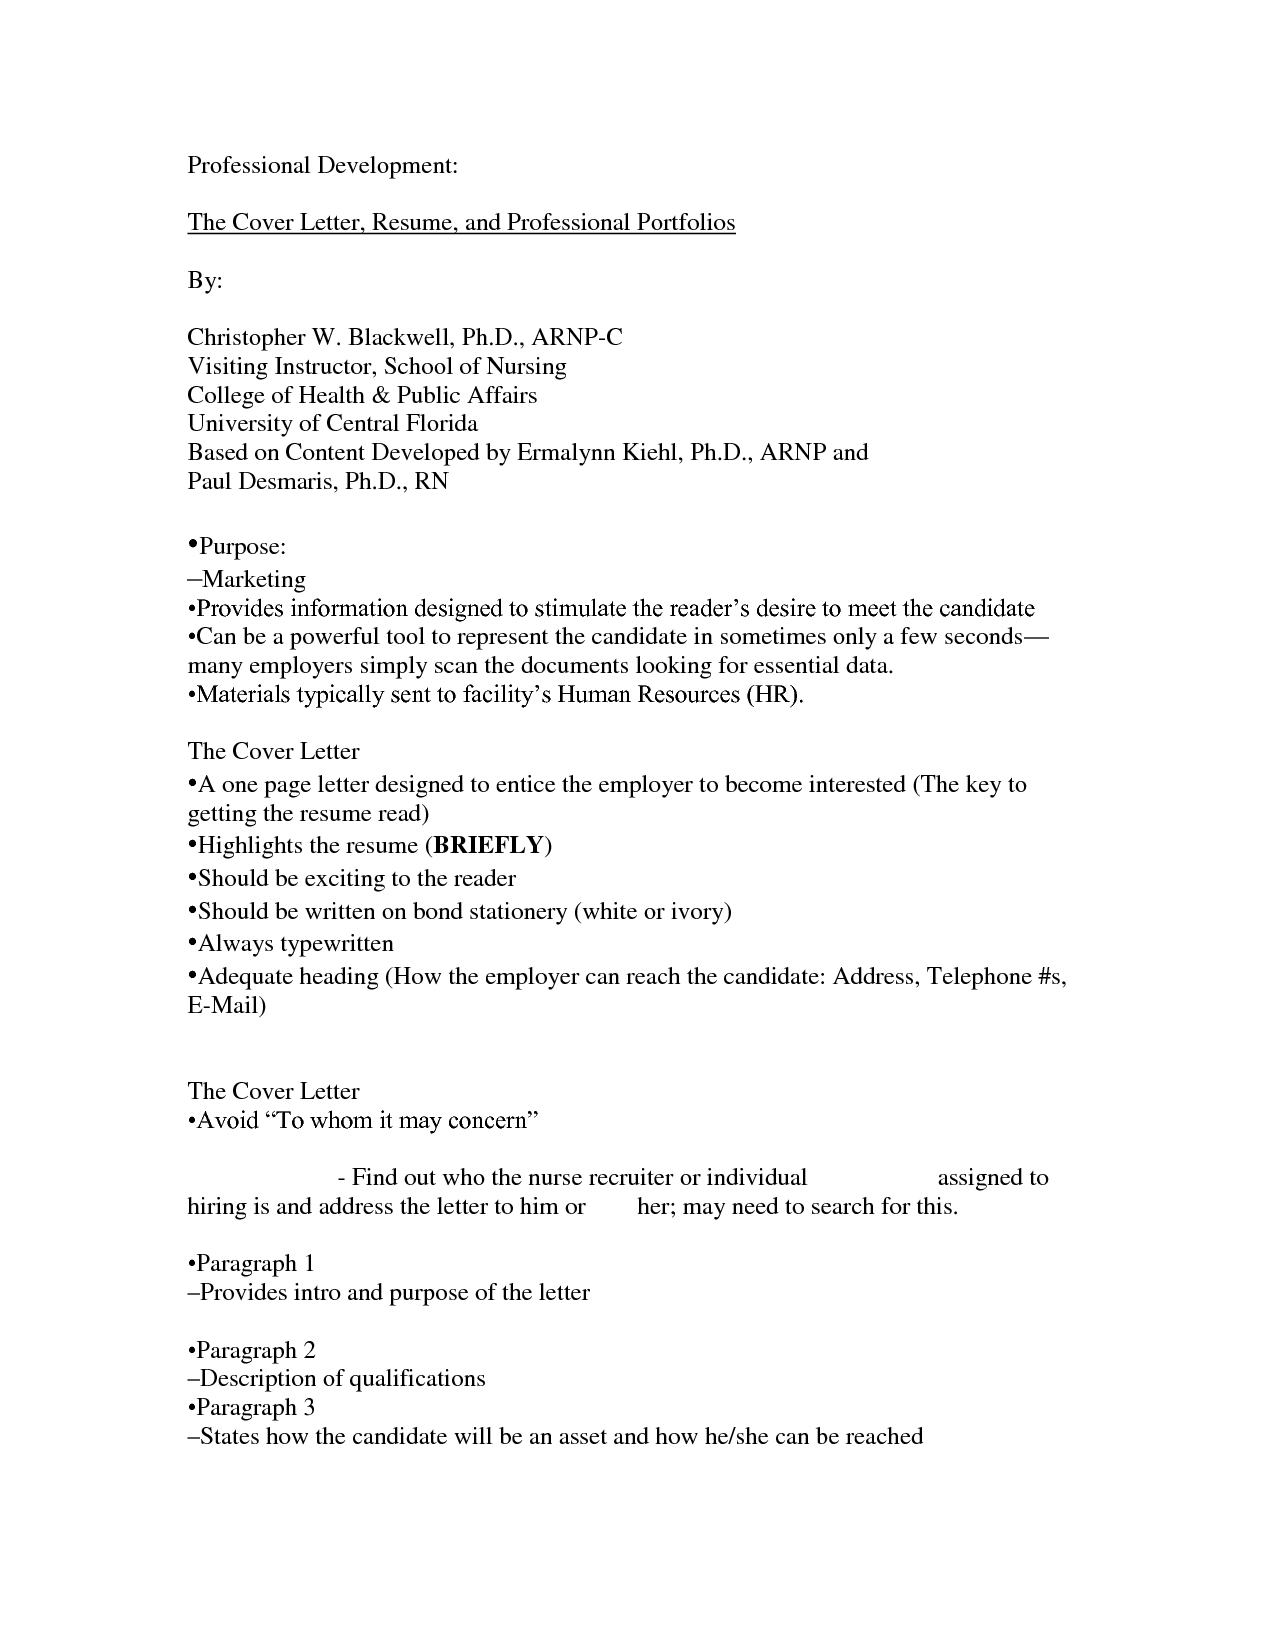 professional resume cover letter sample professional resume and cover letter sample